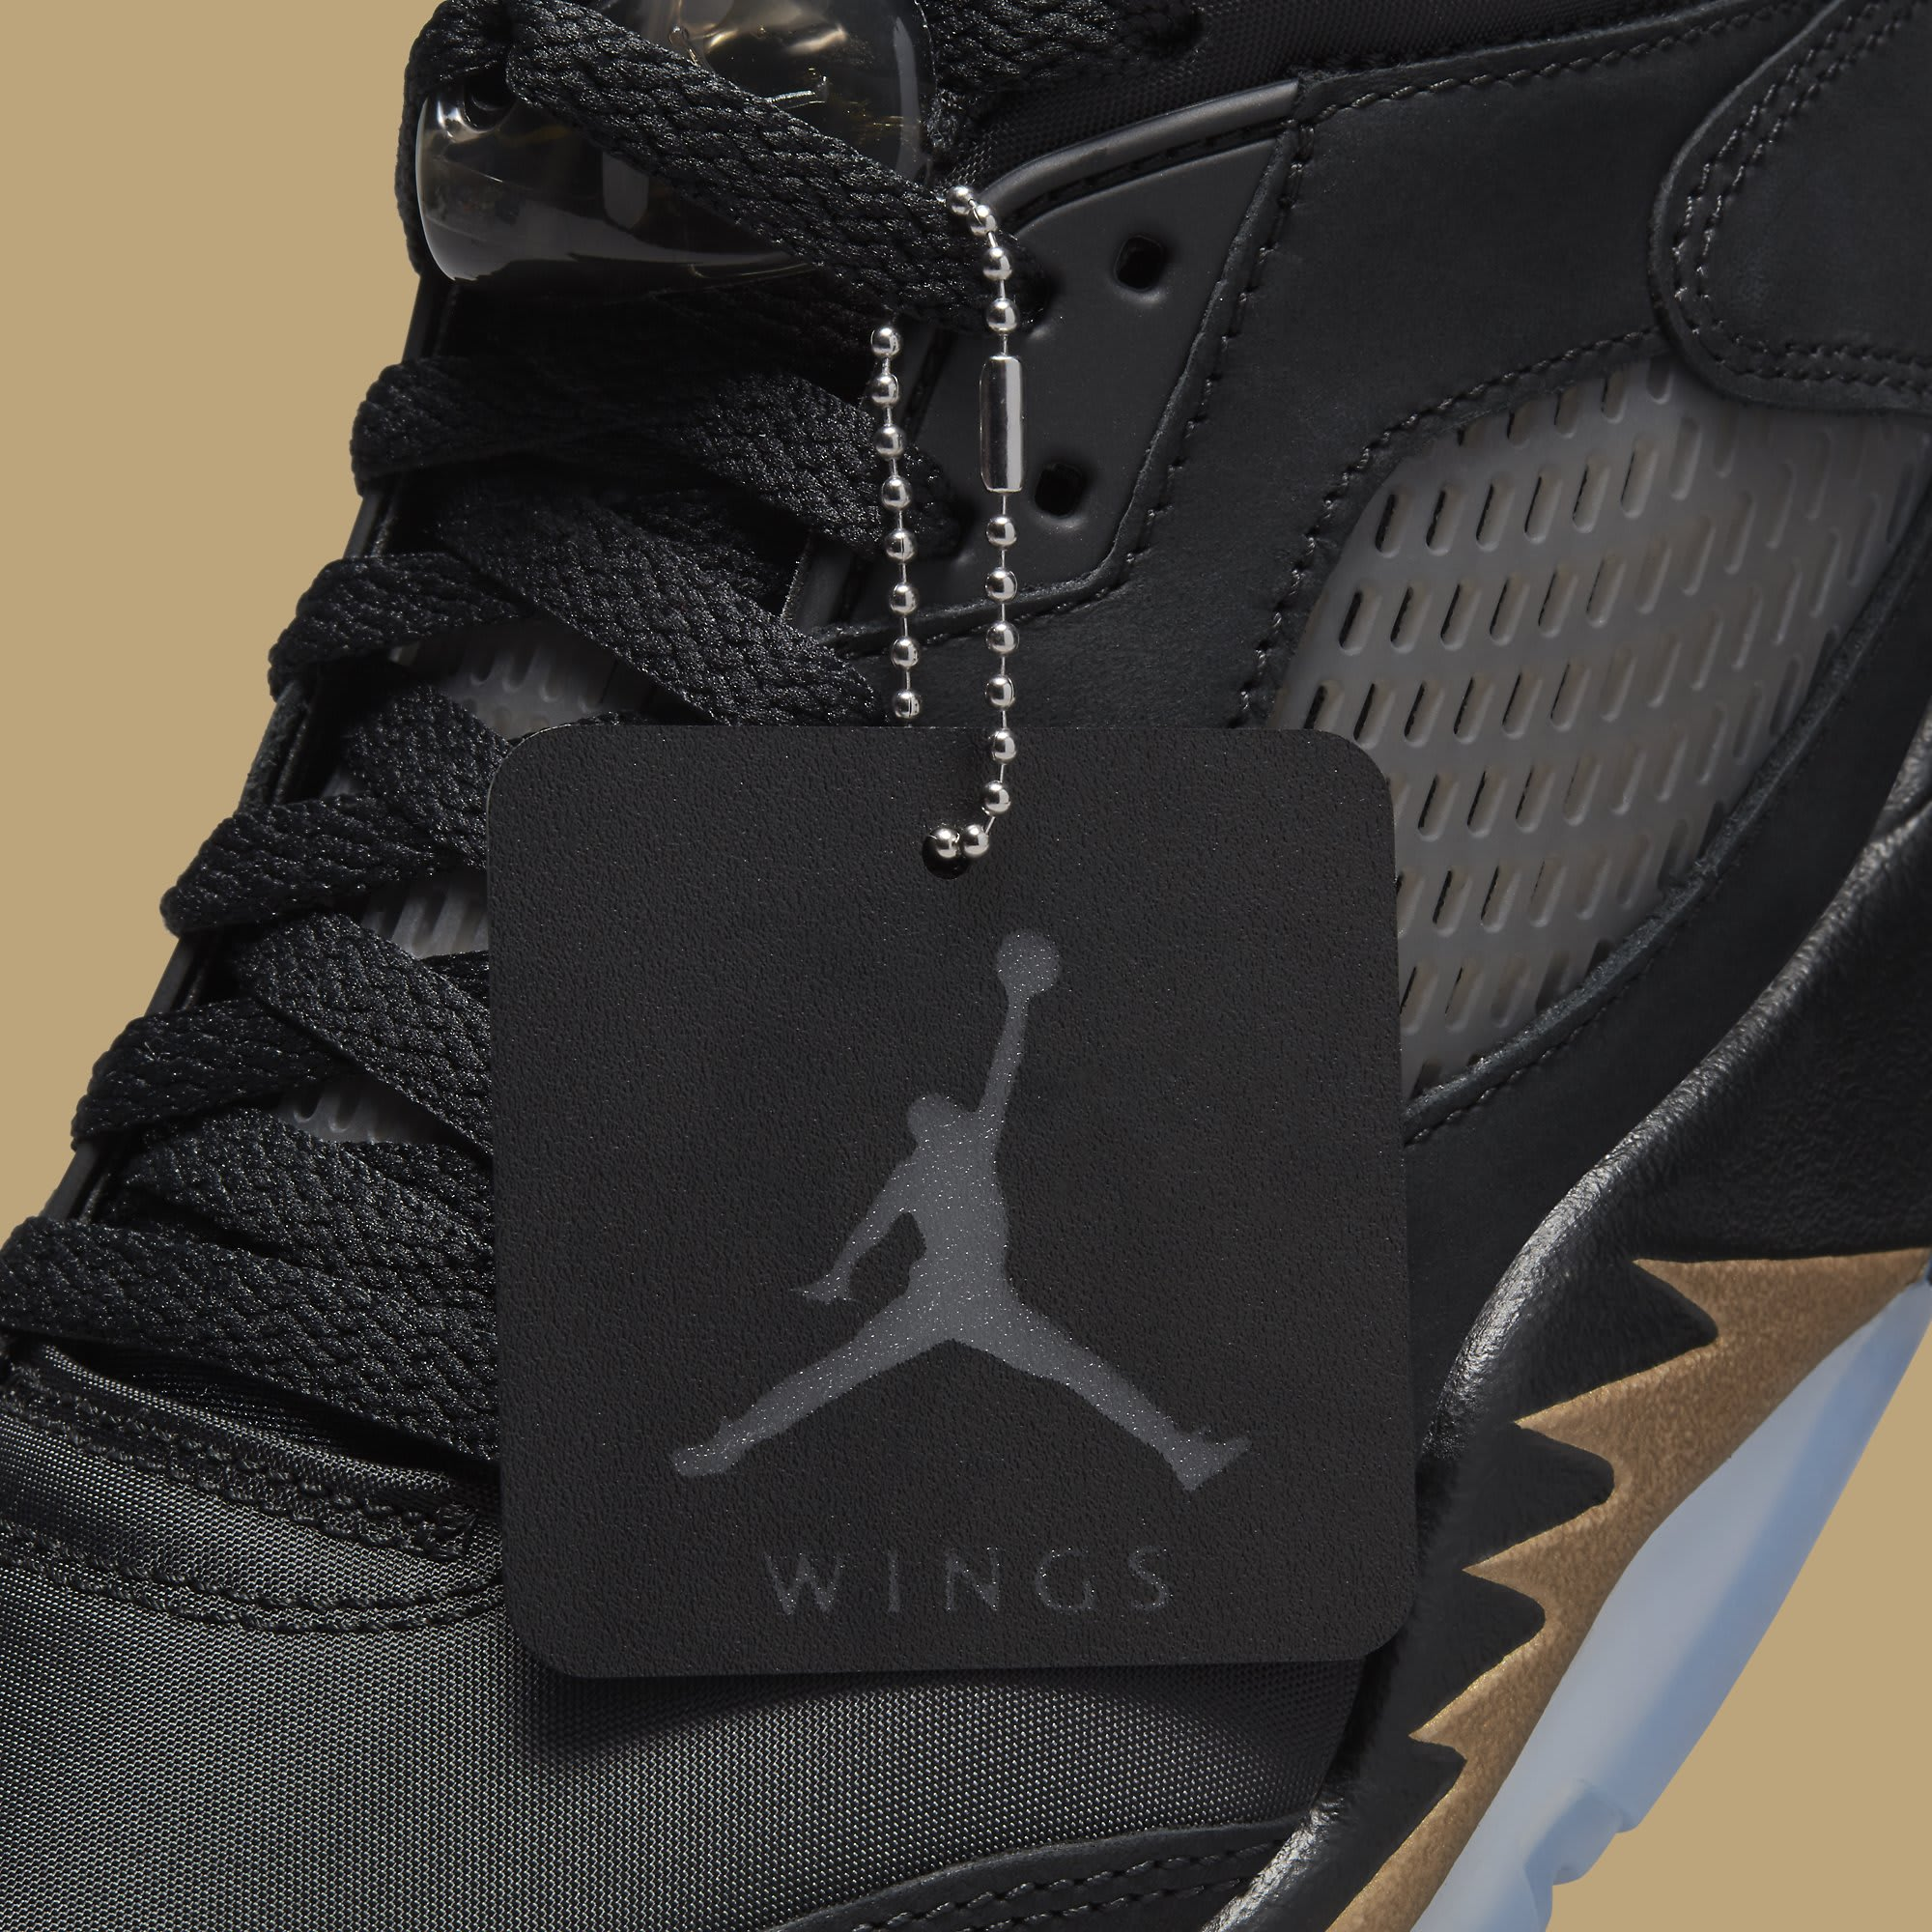 Air Jordan 5 Retro Low Wings 'Class of 2020-21' DJ1094-001 Hangtag